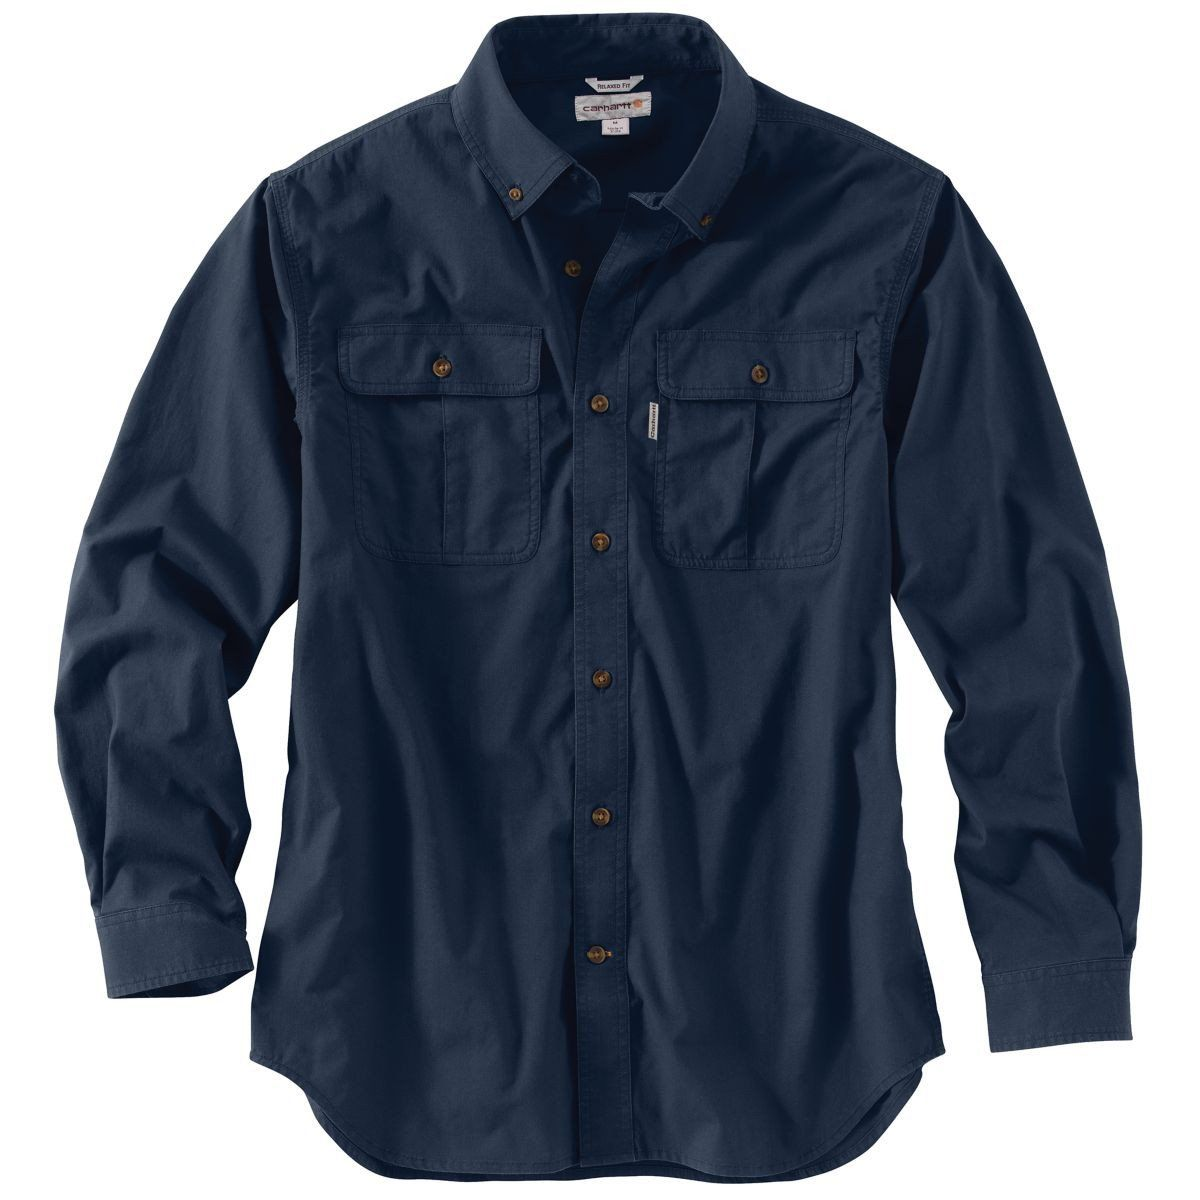 Carhartt Mens Navy Foreman Solid Long Sleeve Work Shirt Products